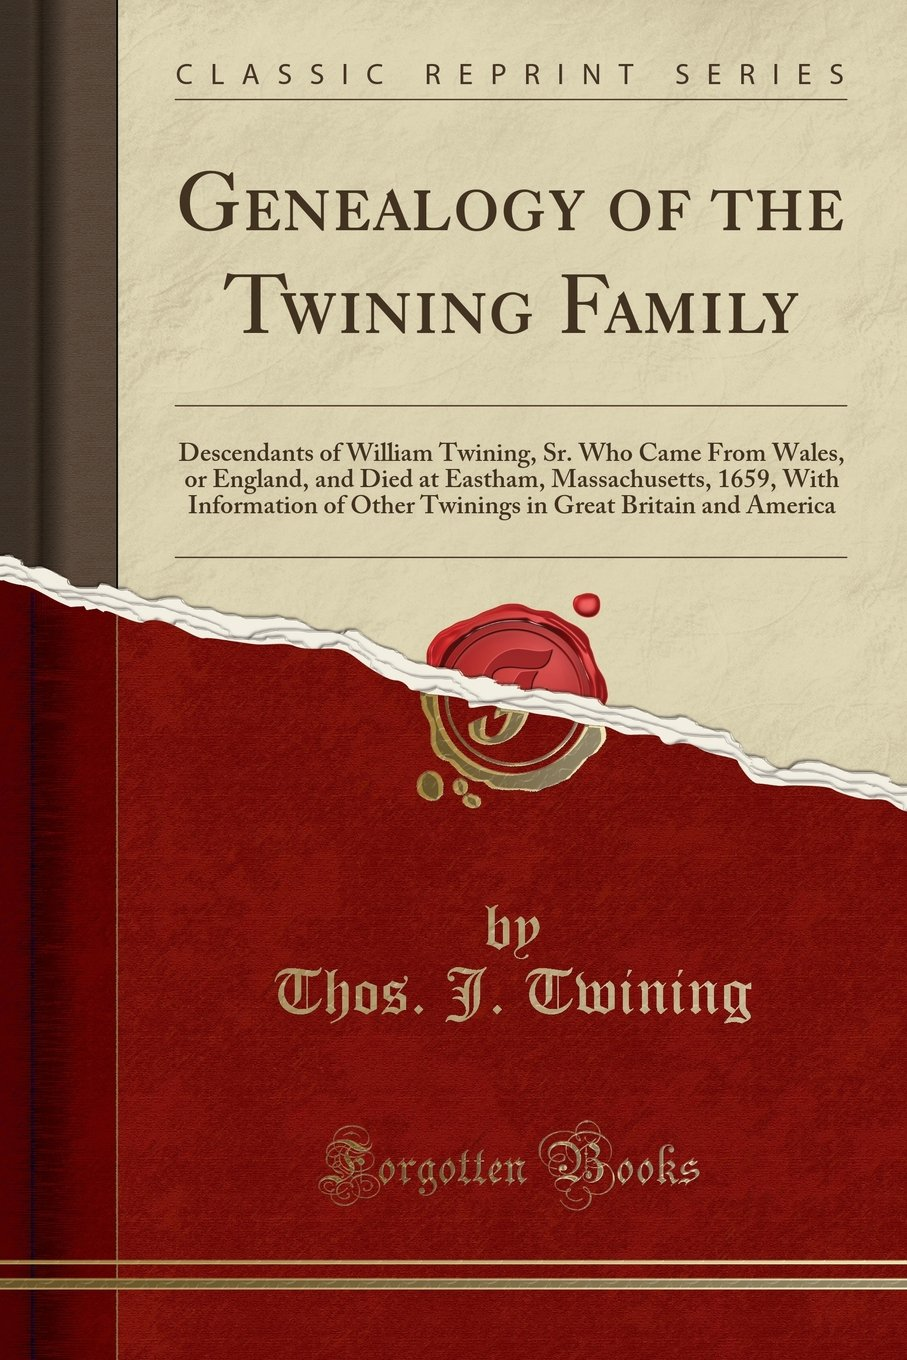 Genealogy of the Twining Family: Descendants of William Twining, Sr. Who Came From Wales, or England, and Died at Eastham, Massachusetts, 1659, With ... Great Britain and America (Classic Reprint) pdf